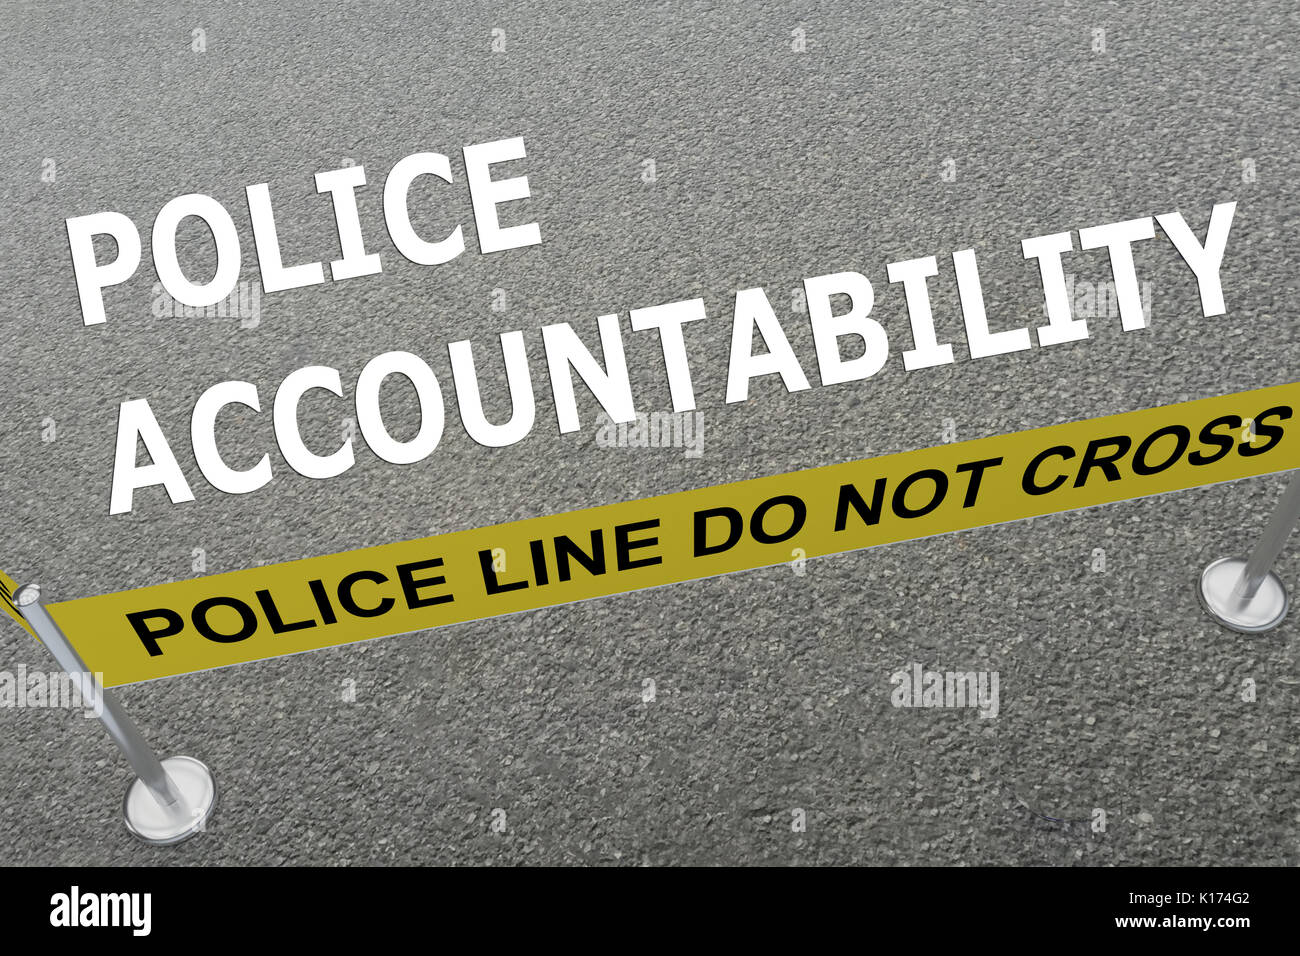 3D illustration of 'POLICE ACCOUNTABILITY' title on the ground in a police arena - Stock Image